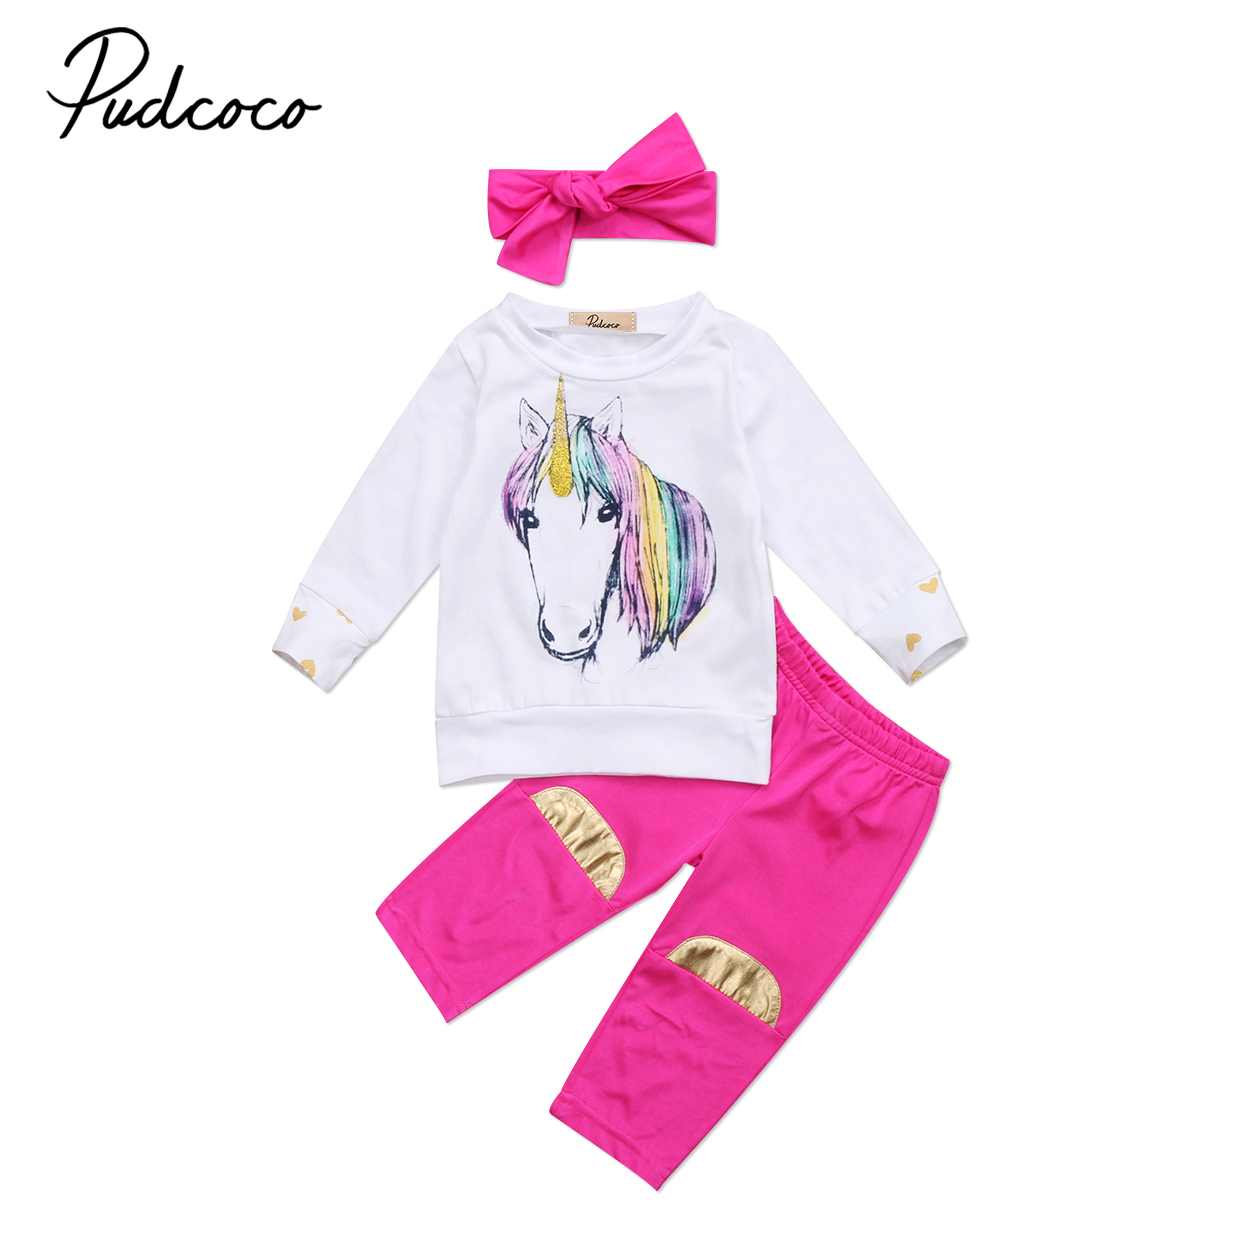 Pudcoco Cartoon Newborn Baby Clothing Sets Girls Kids Outfit Clothes Tops T-shirt Pants Headband Fashion Autumn Cute Baby Set универсальный распылитель с алюминиевым контейнером jtc 5204